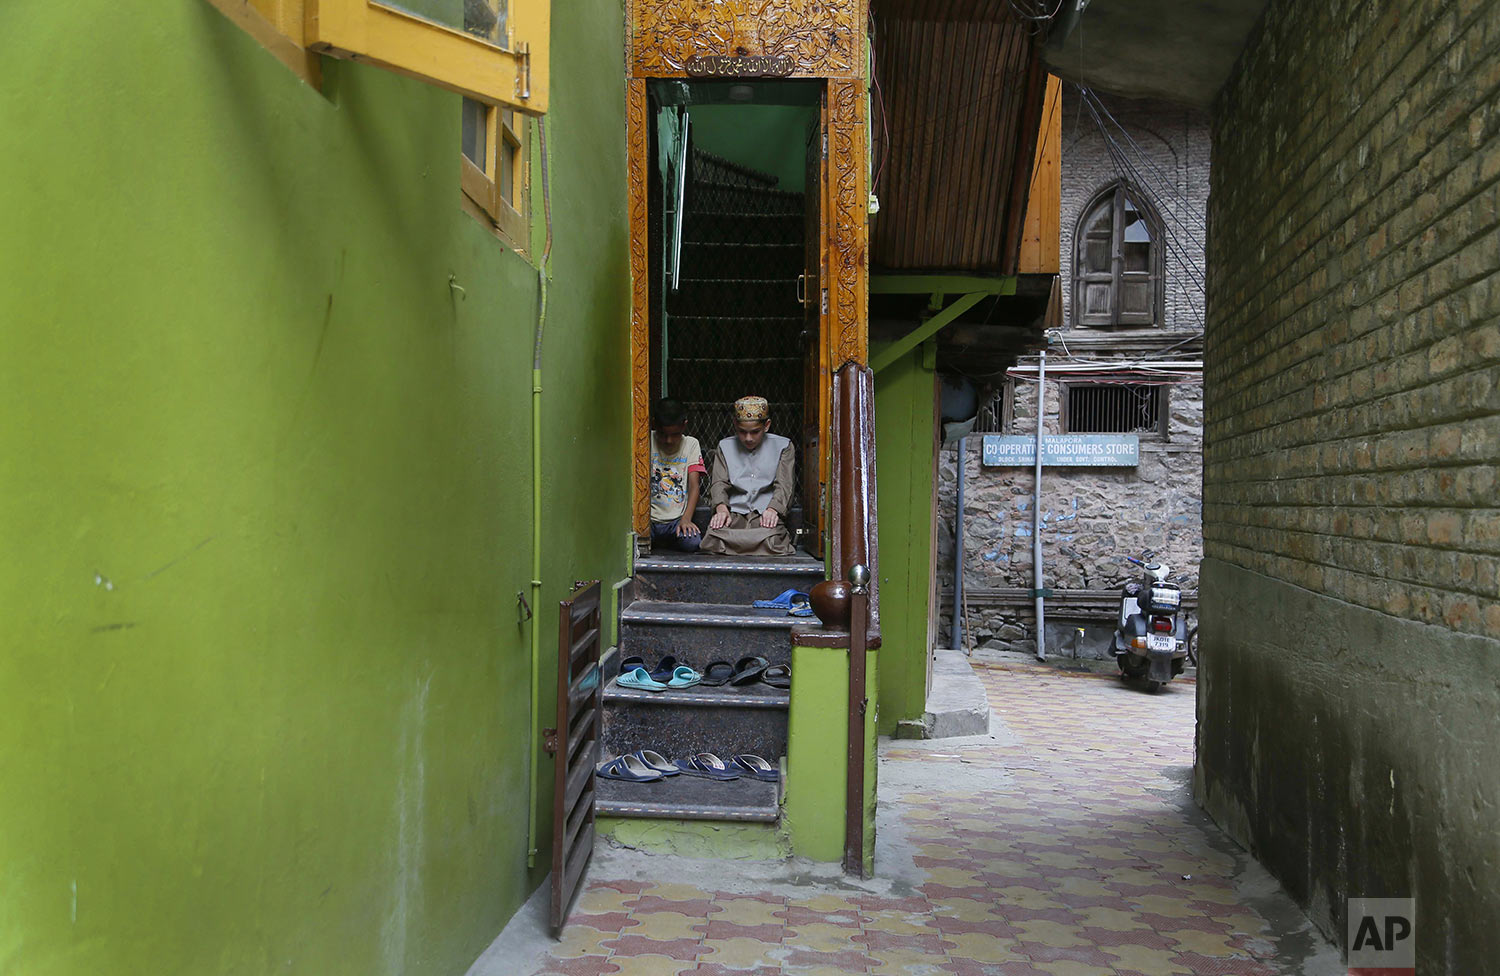 Kashmiri Muslim boys offer Friday prayers at the doorway of a local mosque in an alley during curfew like restrictions in Srinagar, India, Friday, Aug. 16, 2019. (AP Photo/Mukhtar Khan)